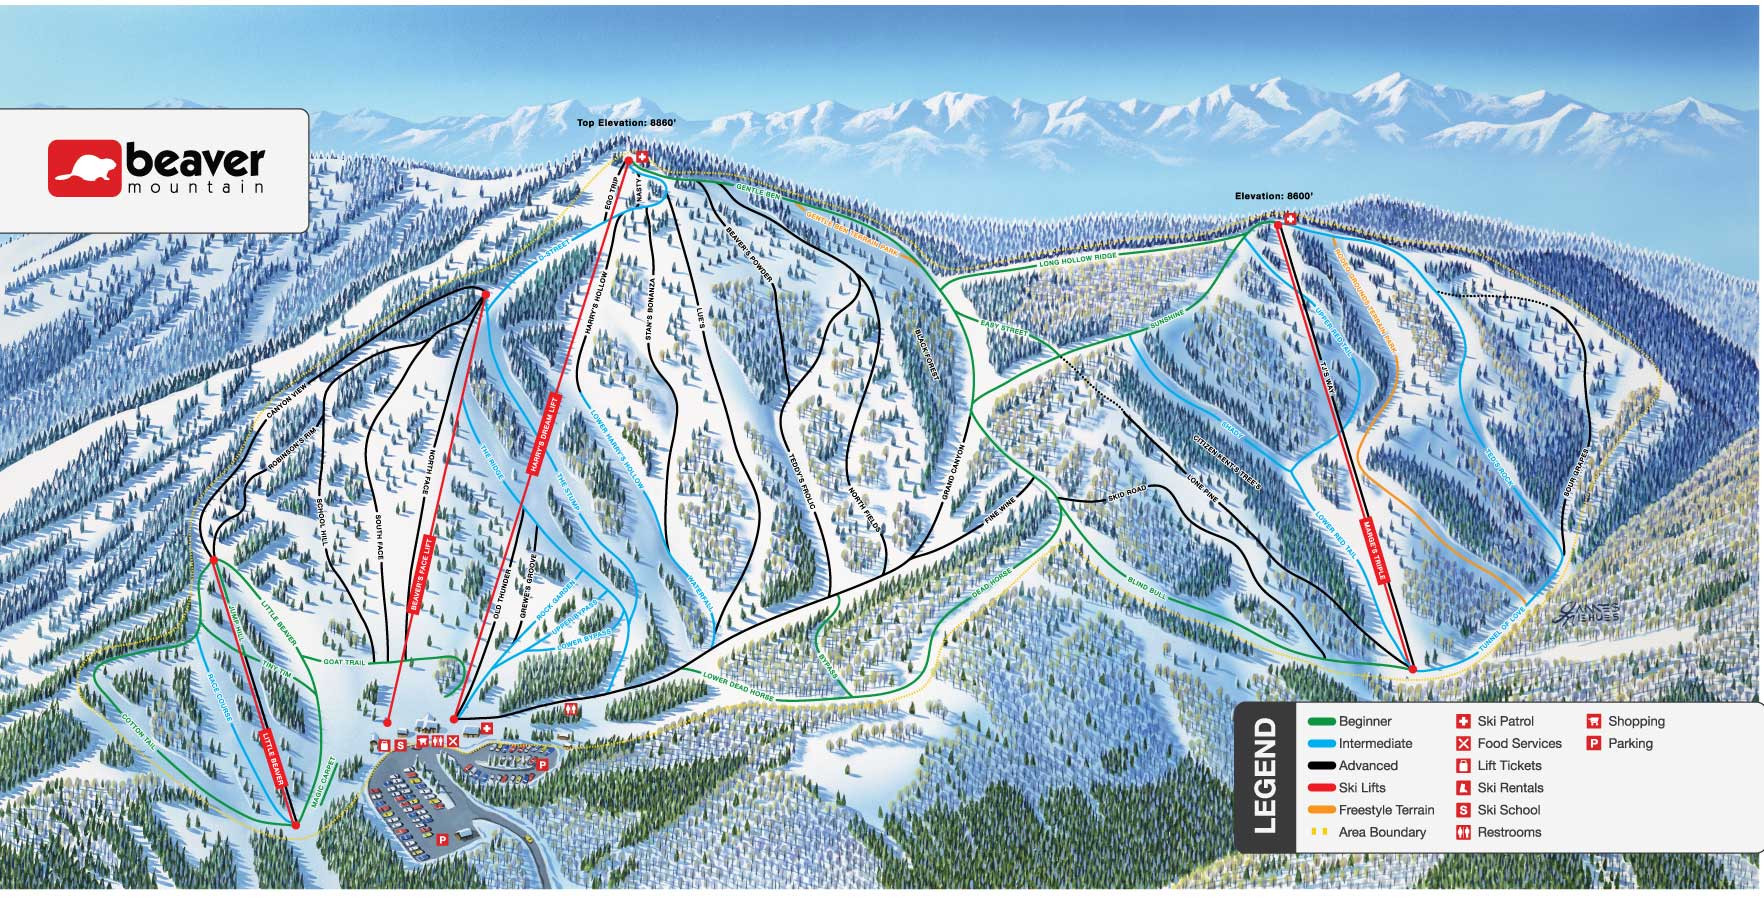 Beaver Mountain Piste / Trail Map